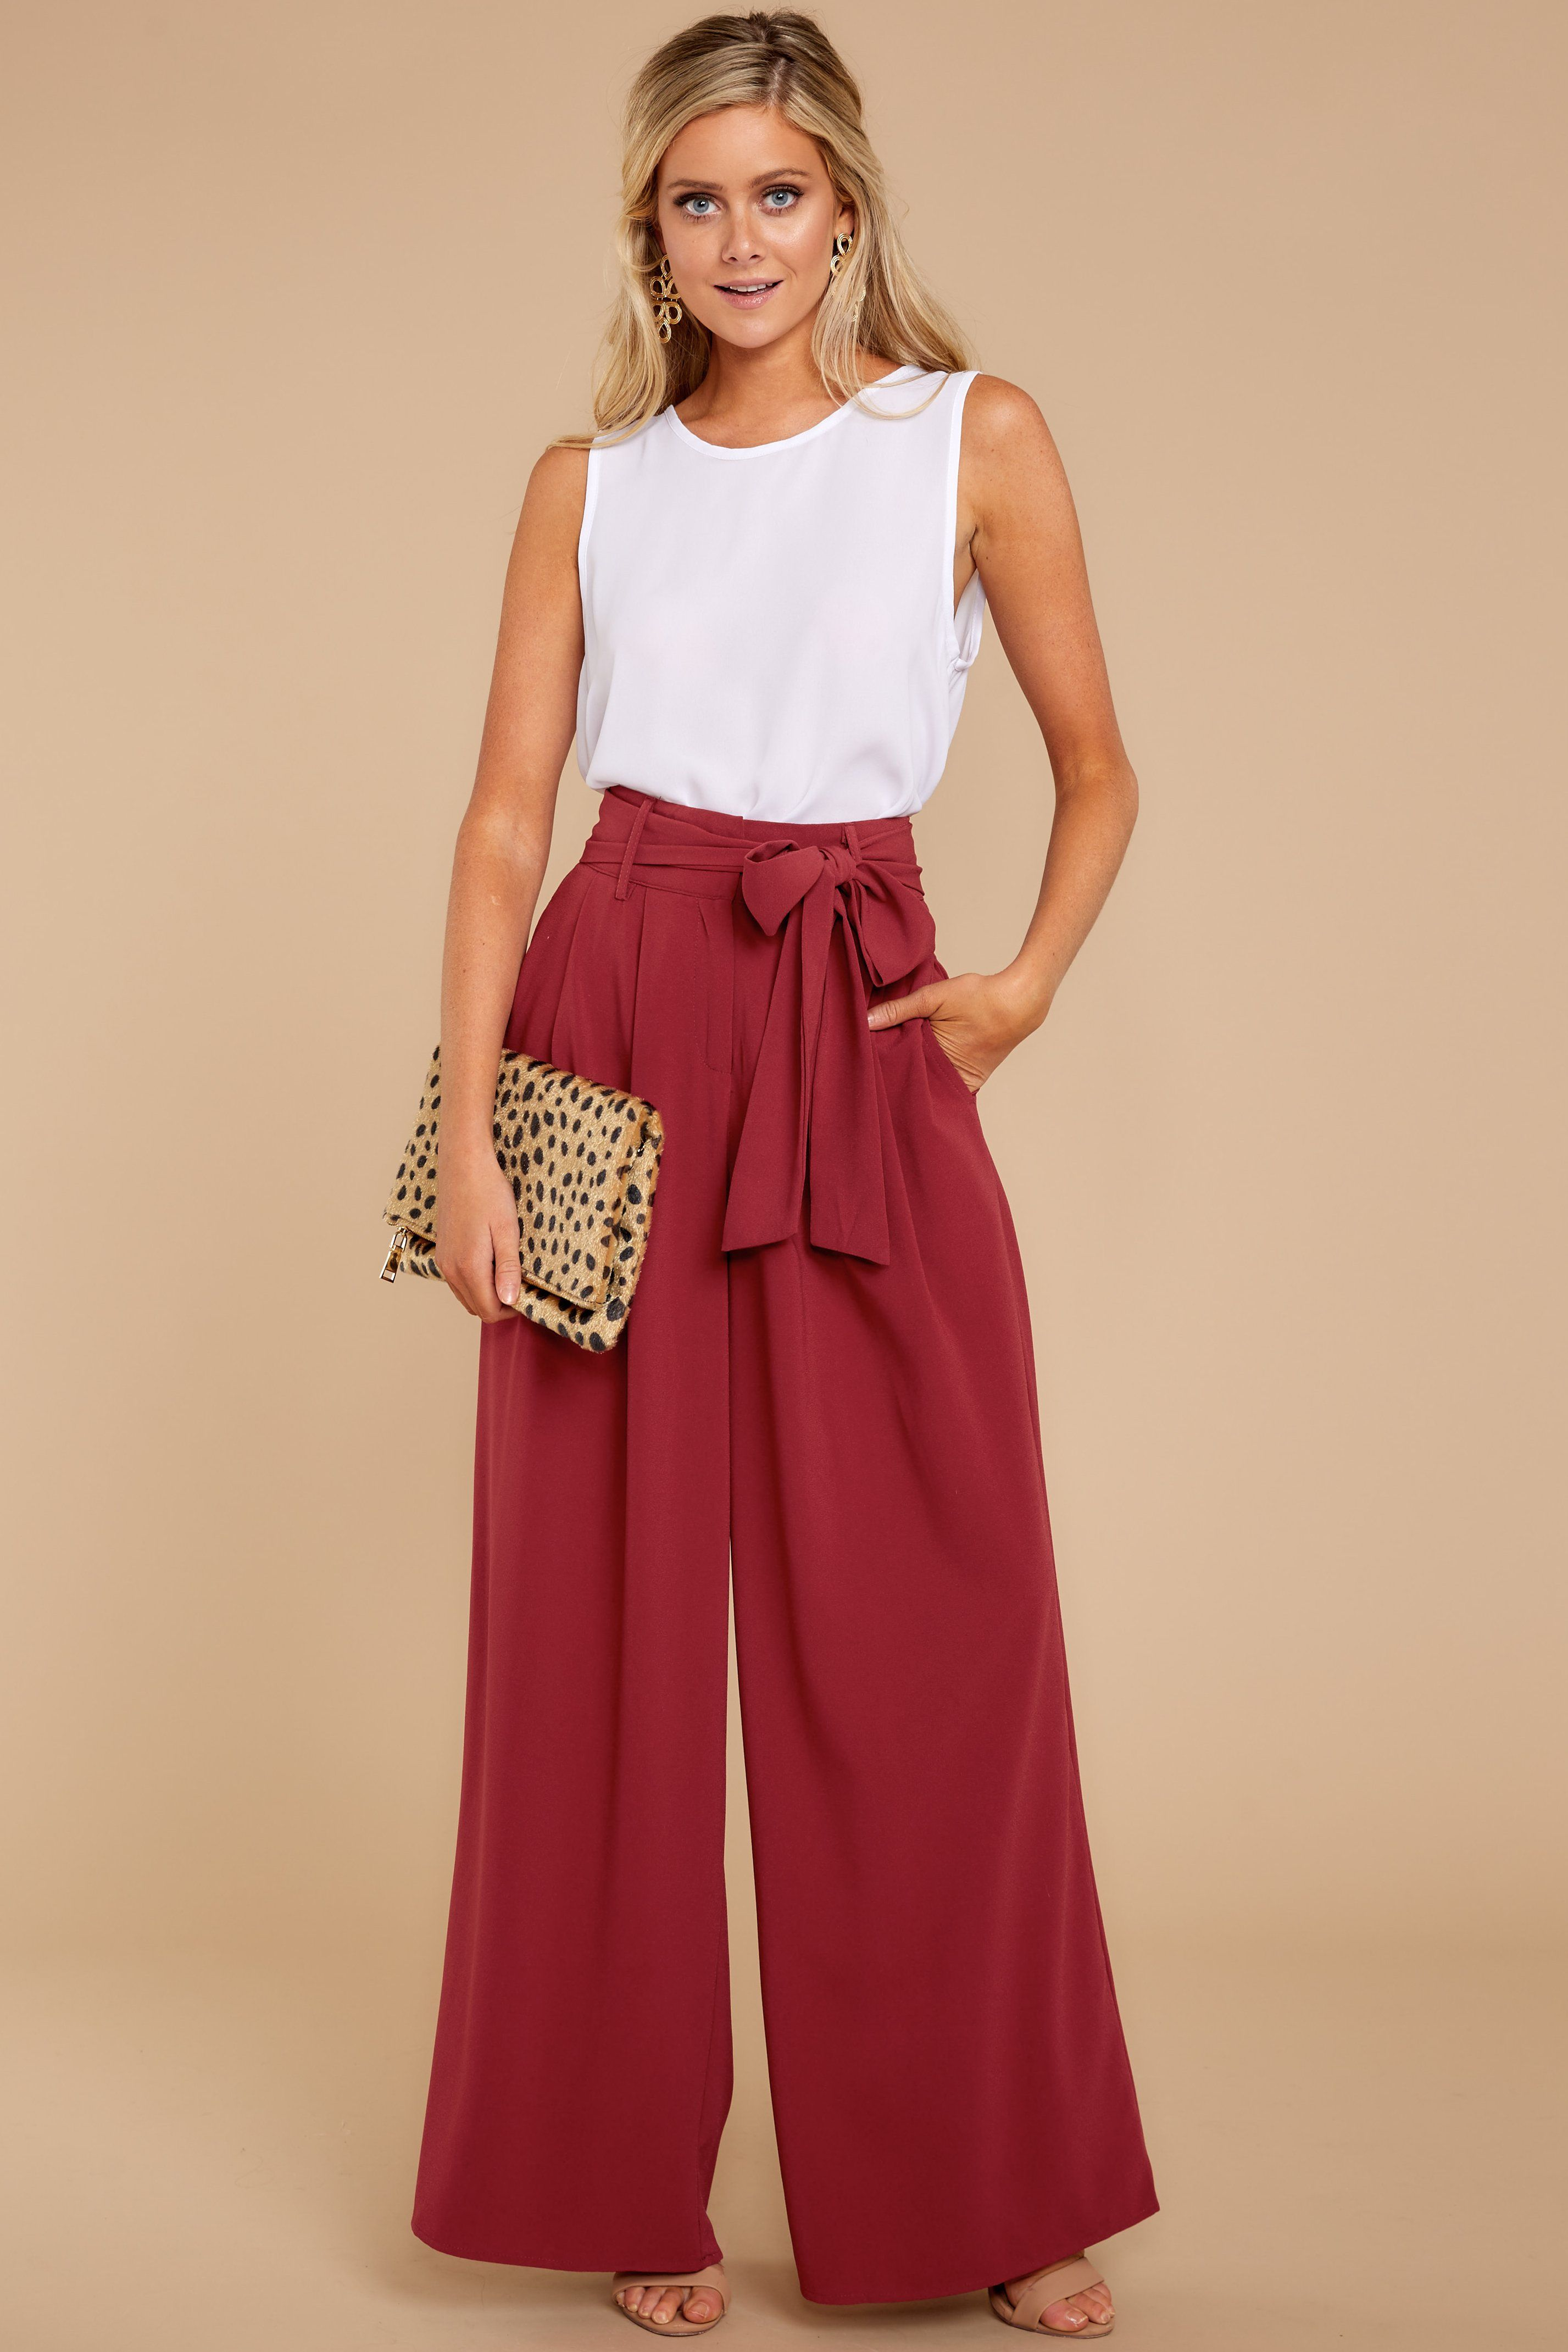 aabb9917e7 Elegant Red Palazzo Pants - Trendy Wide Leg Pants - Pants - $42.00 – Red  Dress Boutique